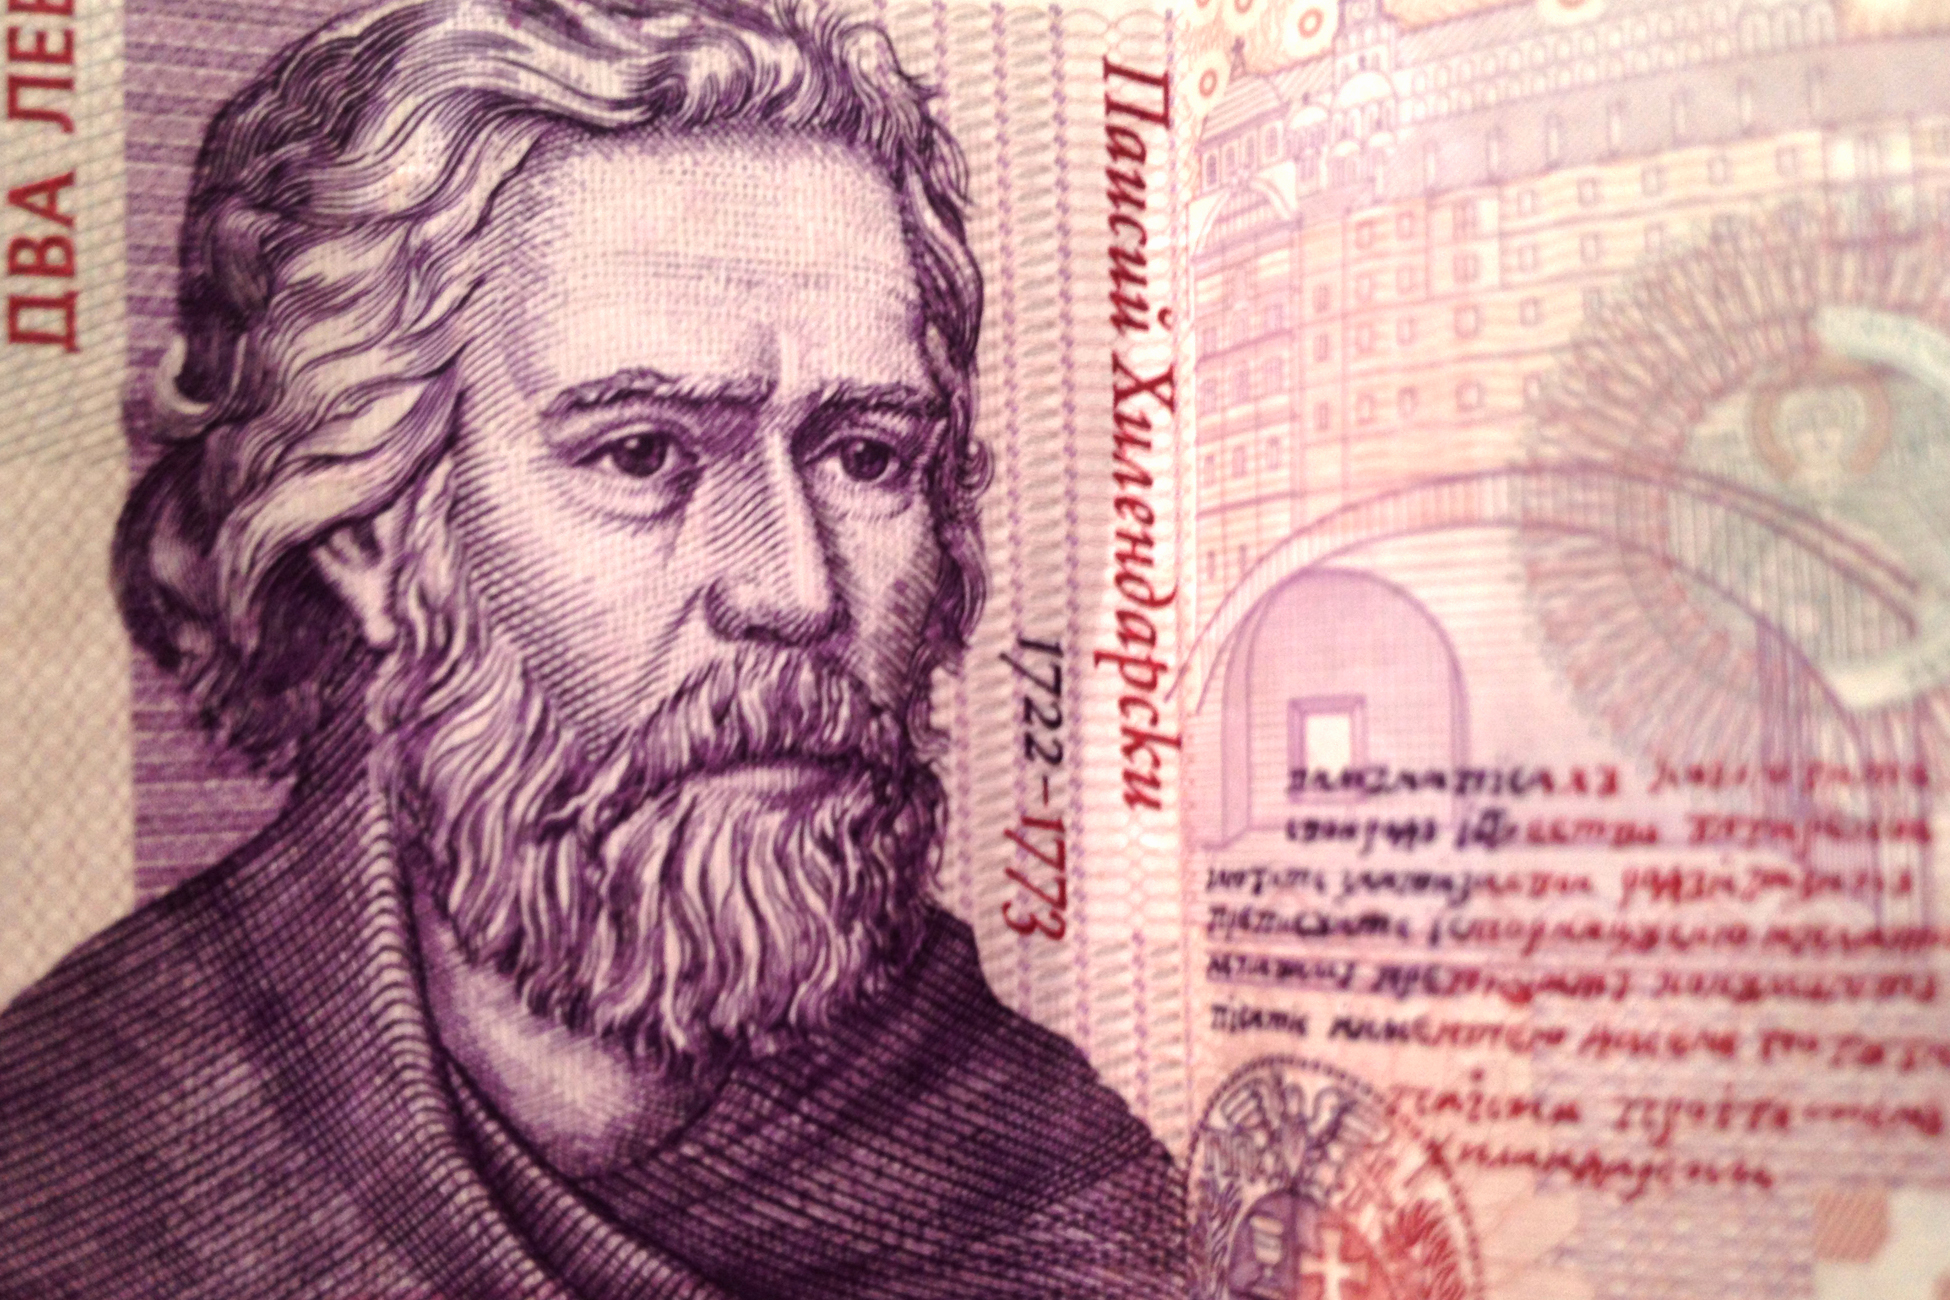 A Bulgarian 2 leva note